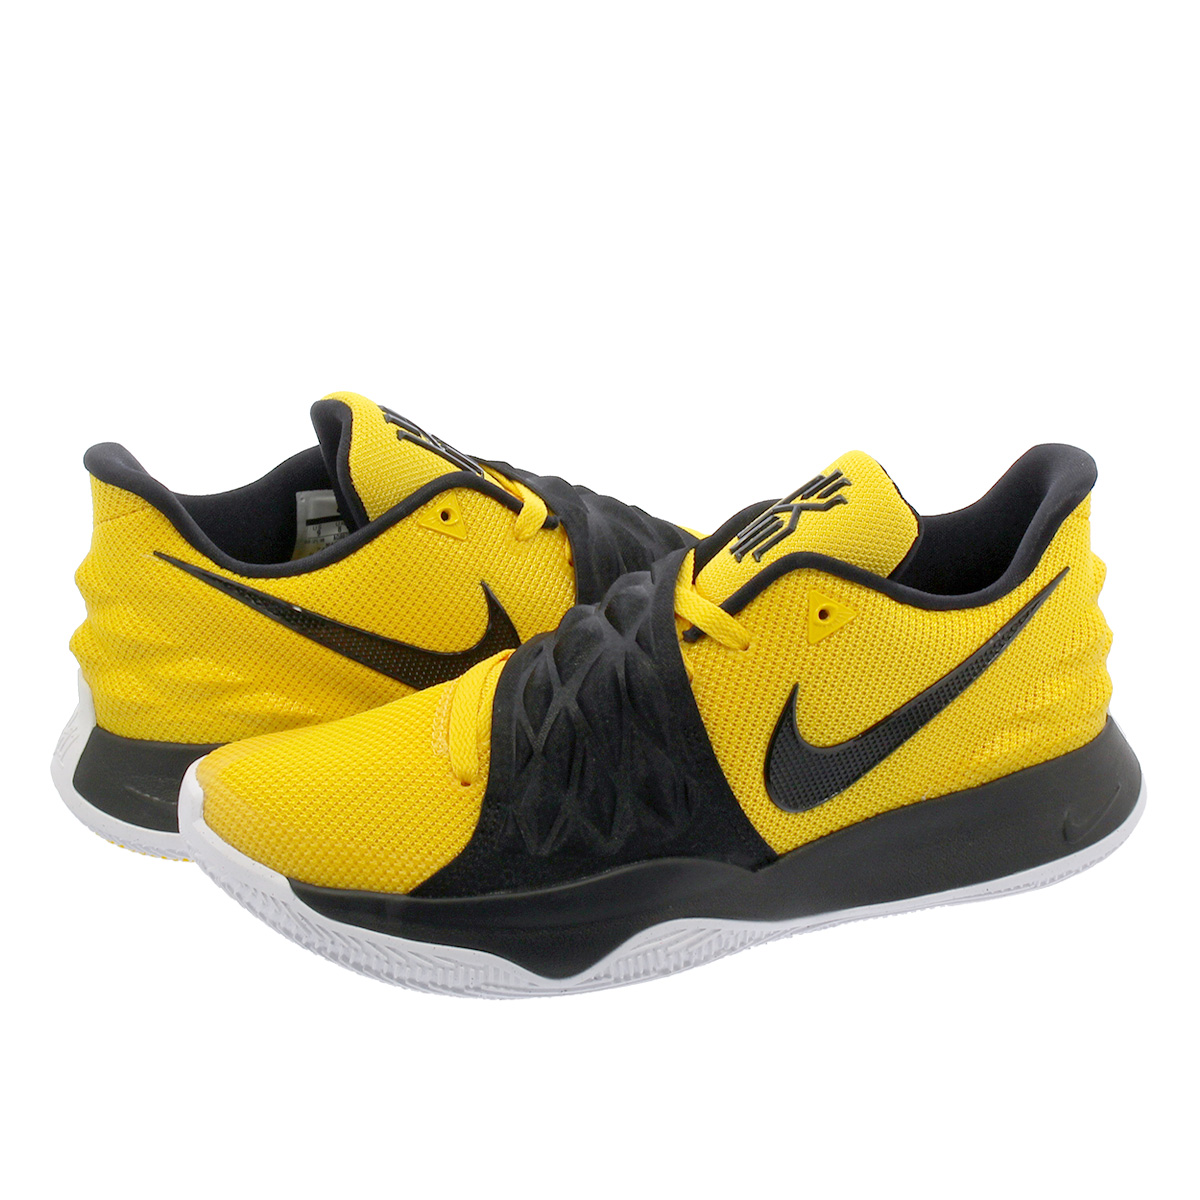 0170e492d0f ... clearance nike kyrie 4 low nike chi lee 4 low amarillo black ao8979 700  7f6a0 f8fb8